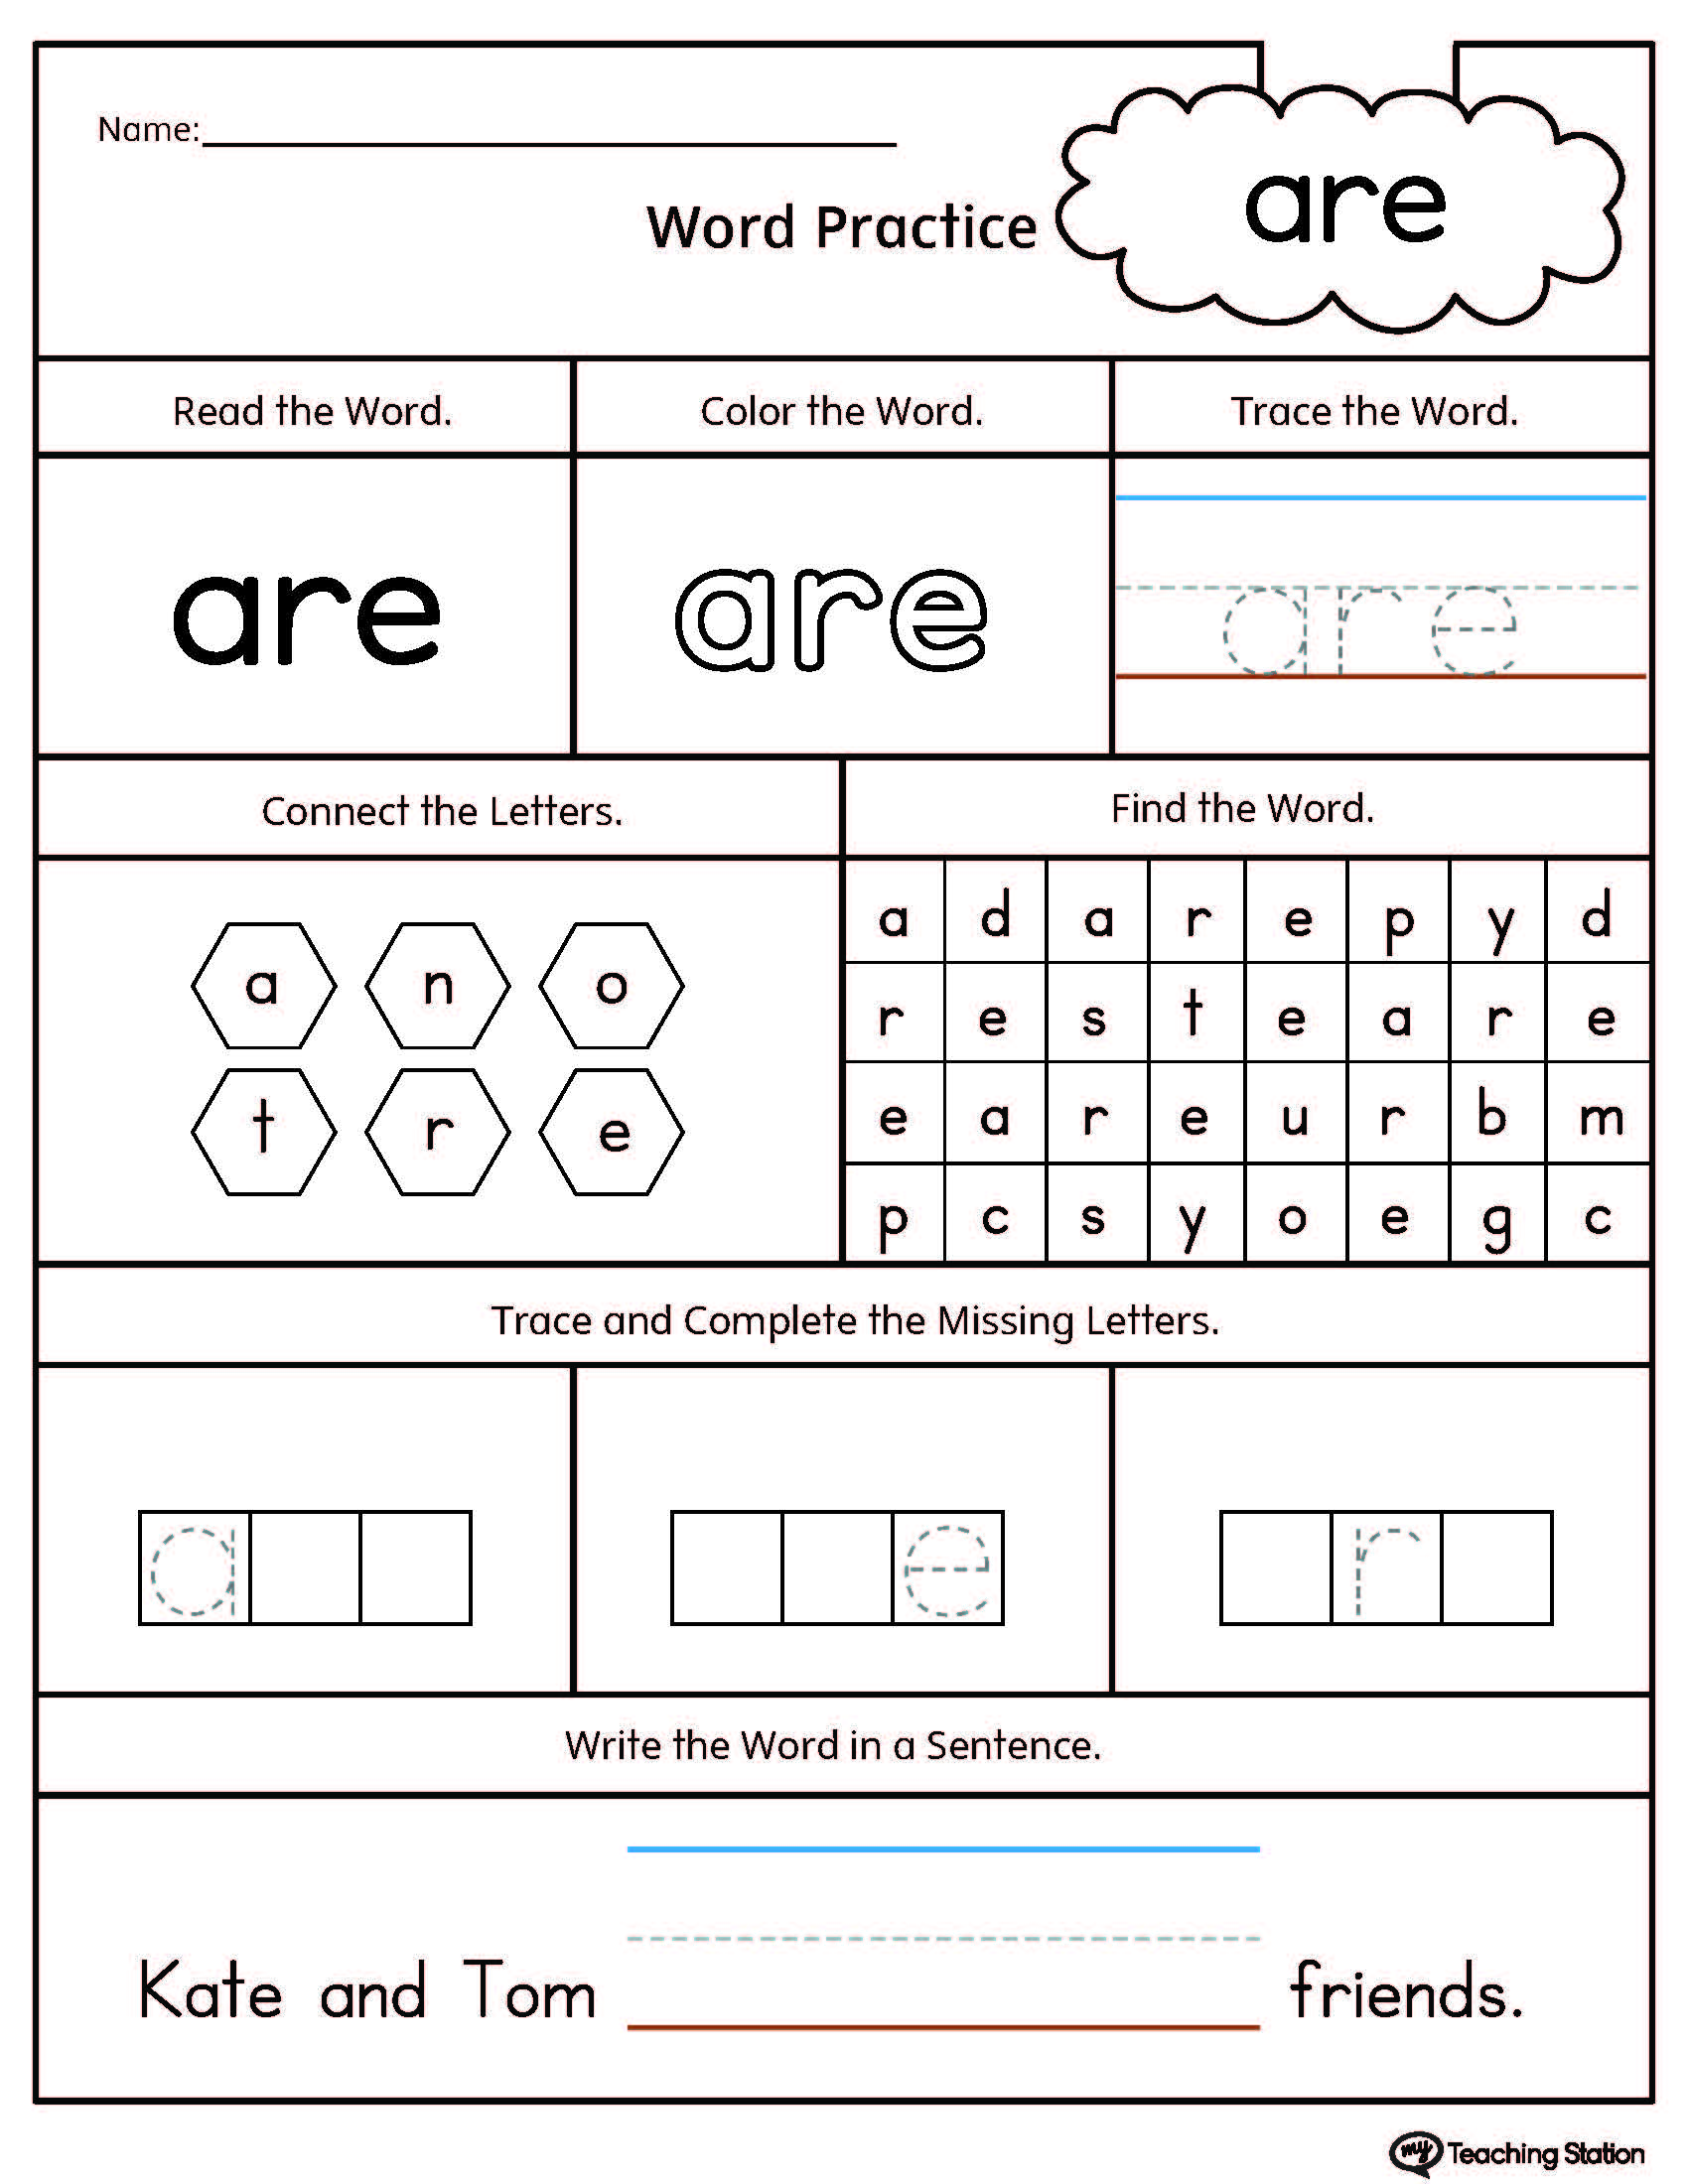 High Frequency Words Printable Worksheets | MyTeachingStation.com